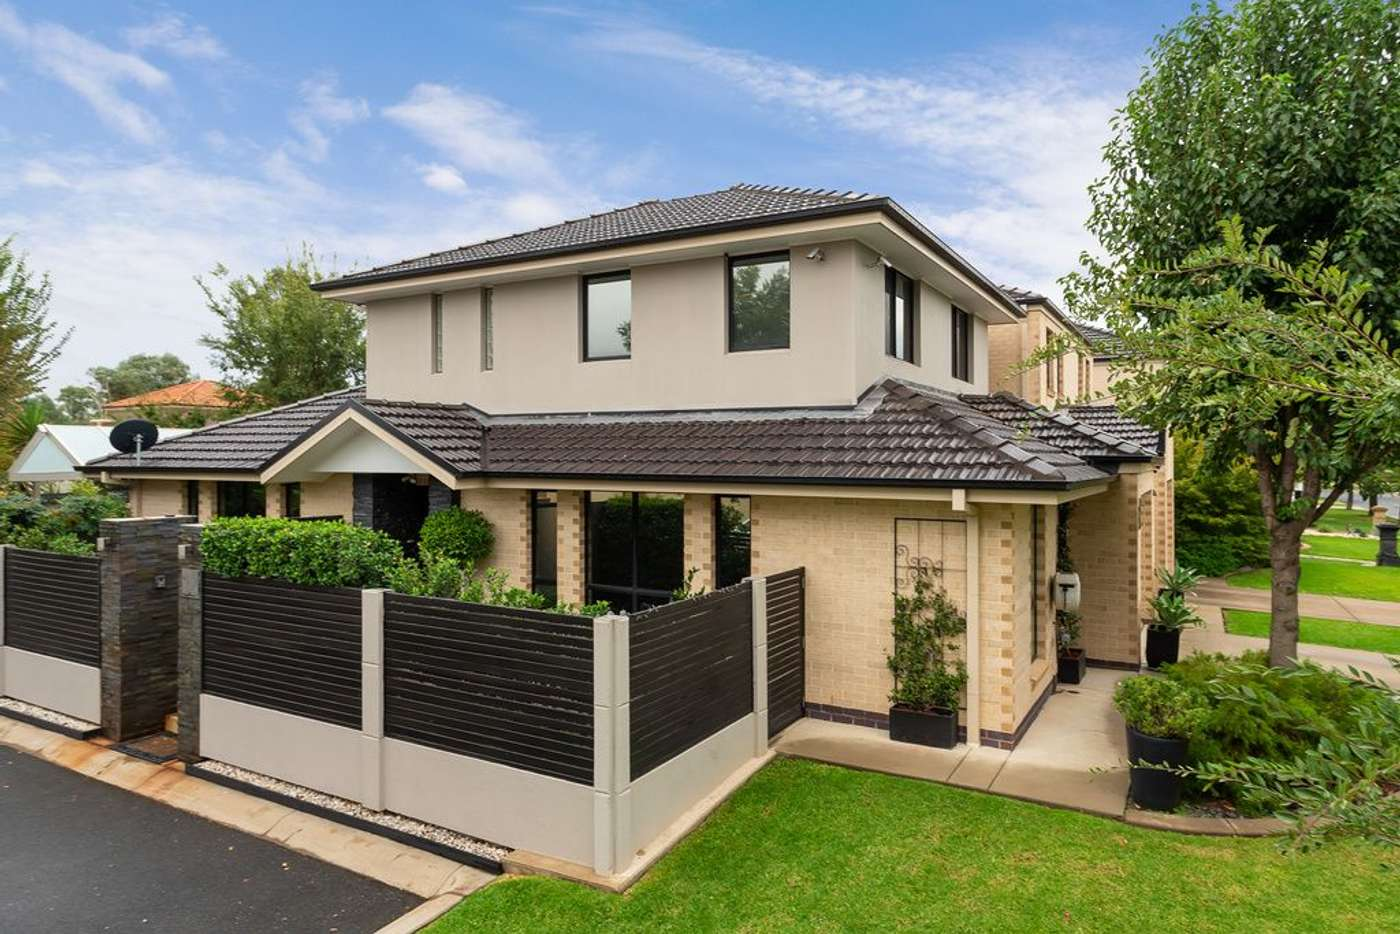 Main view of Homely house listing, 22 Galing Place, Wagga Wagga NSW 2650